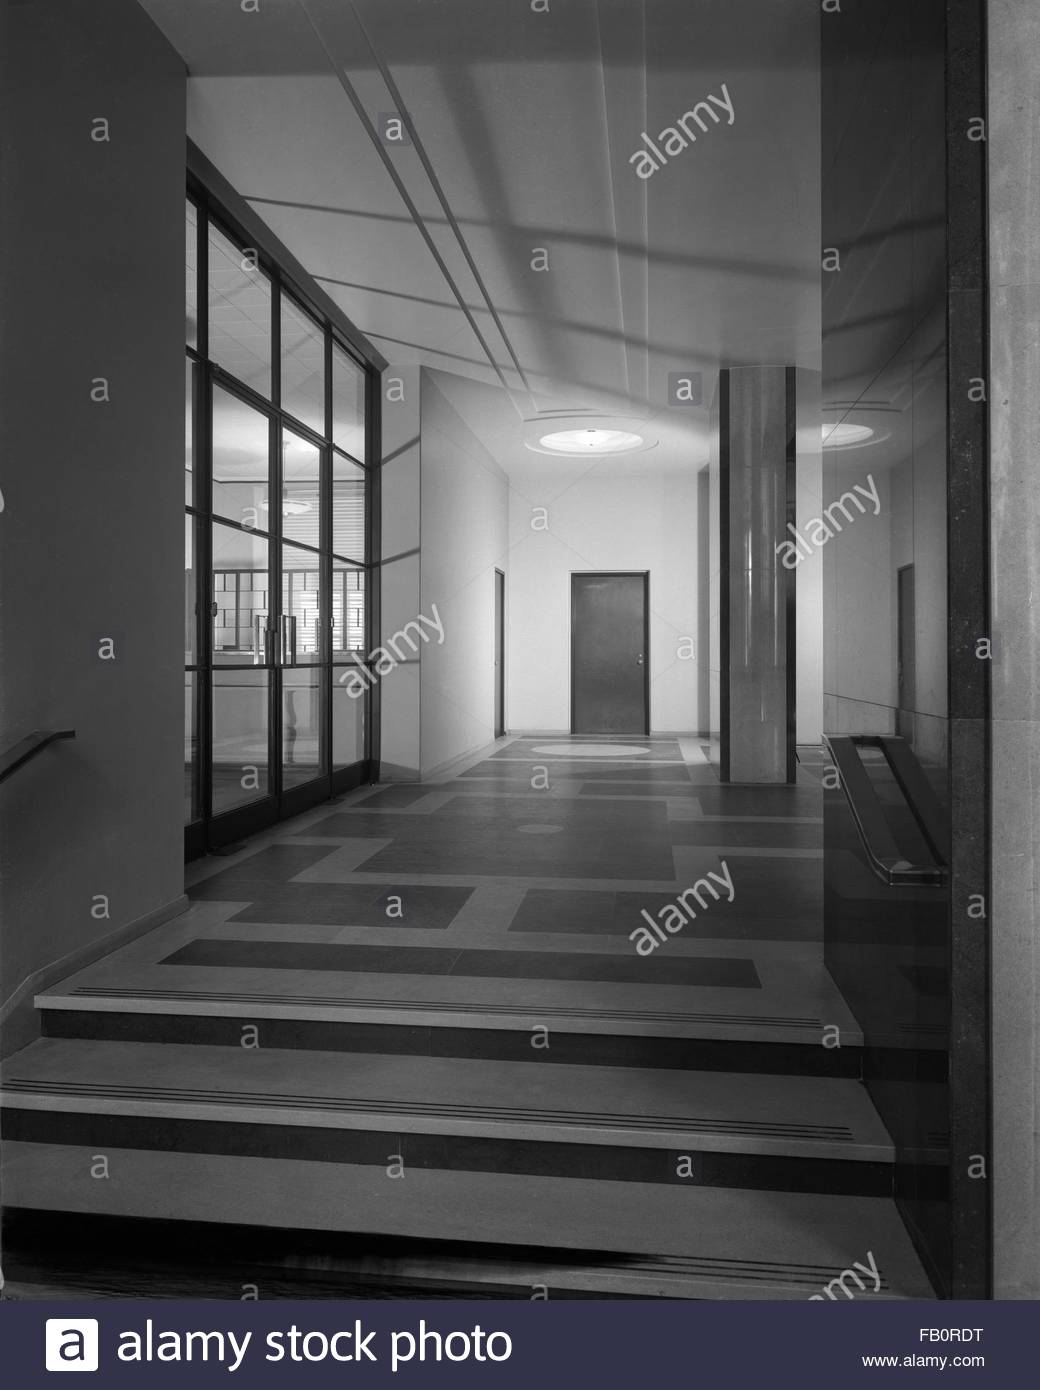 Illinois Bell Telephone building in Springfield (Ill.), 1939 July 17. Interior, corridor with mail shoot letter - Stock Image